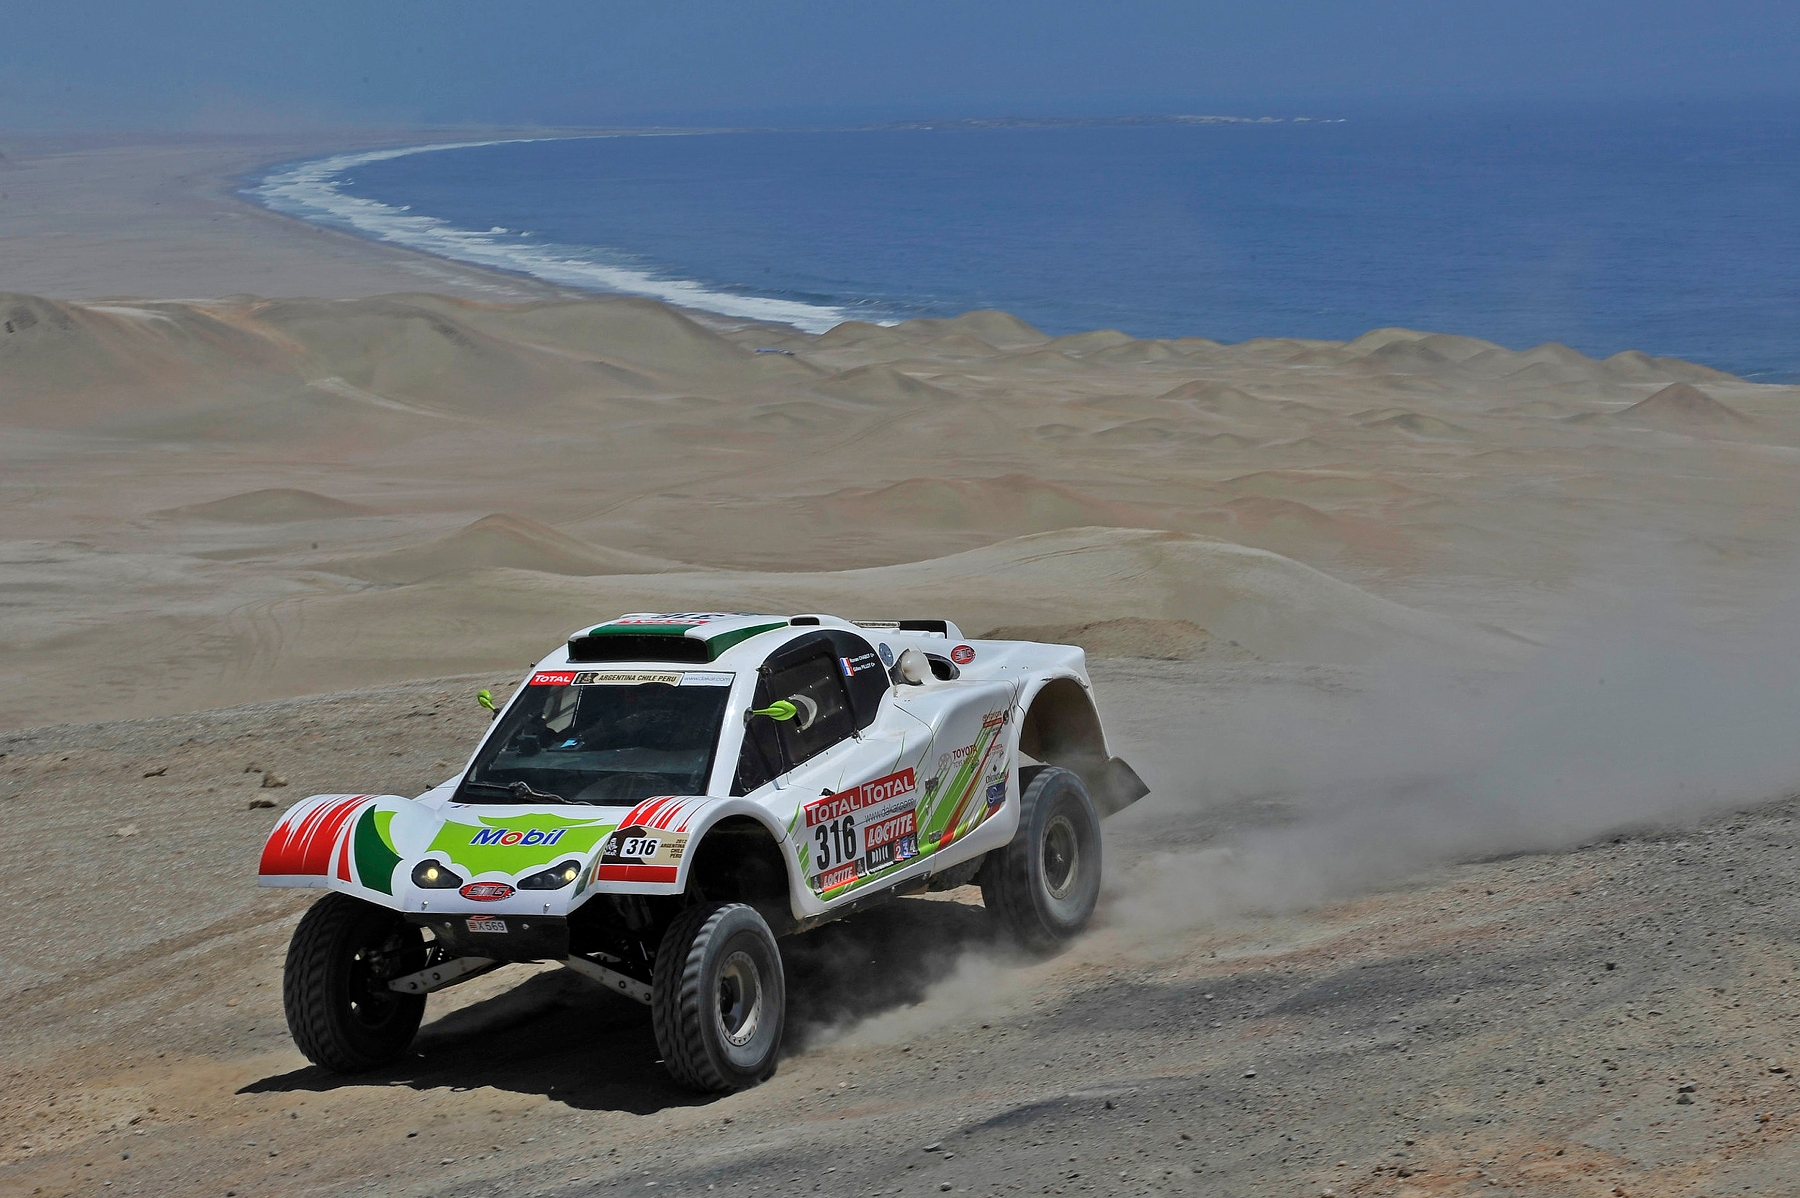 MOTORSPORT - DAKAR ARGENTINA CHILE PERU 2012 - STAGE 12 - AREQUIPA (PER) TO NASCA (PER) - 13/01/2012 - PHOTO: DPPI